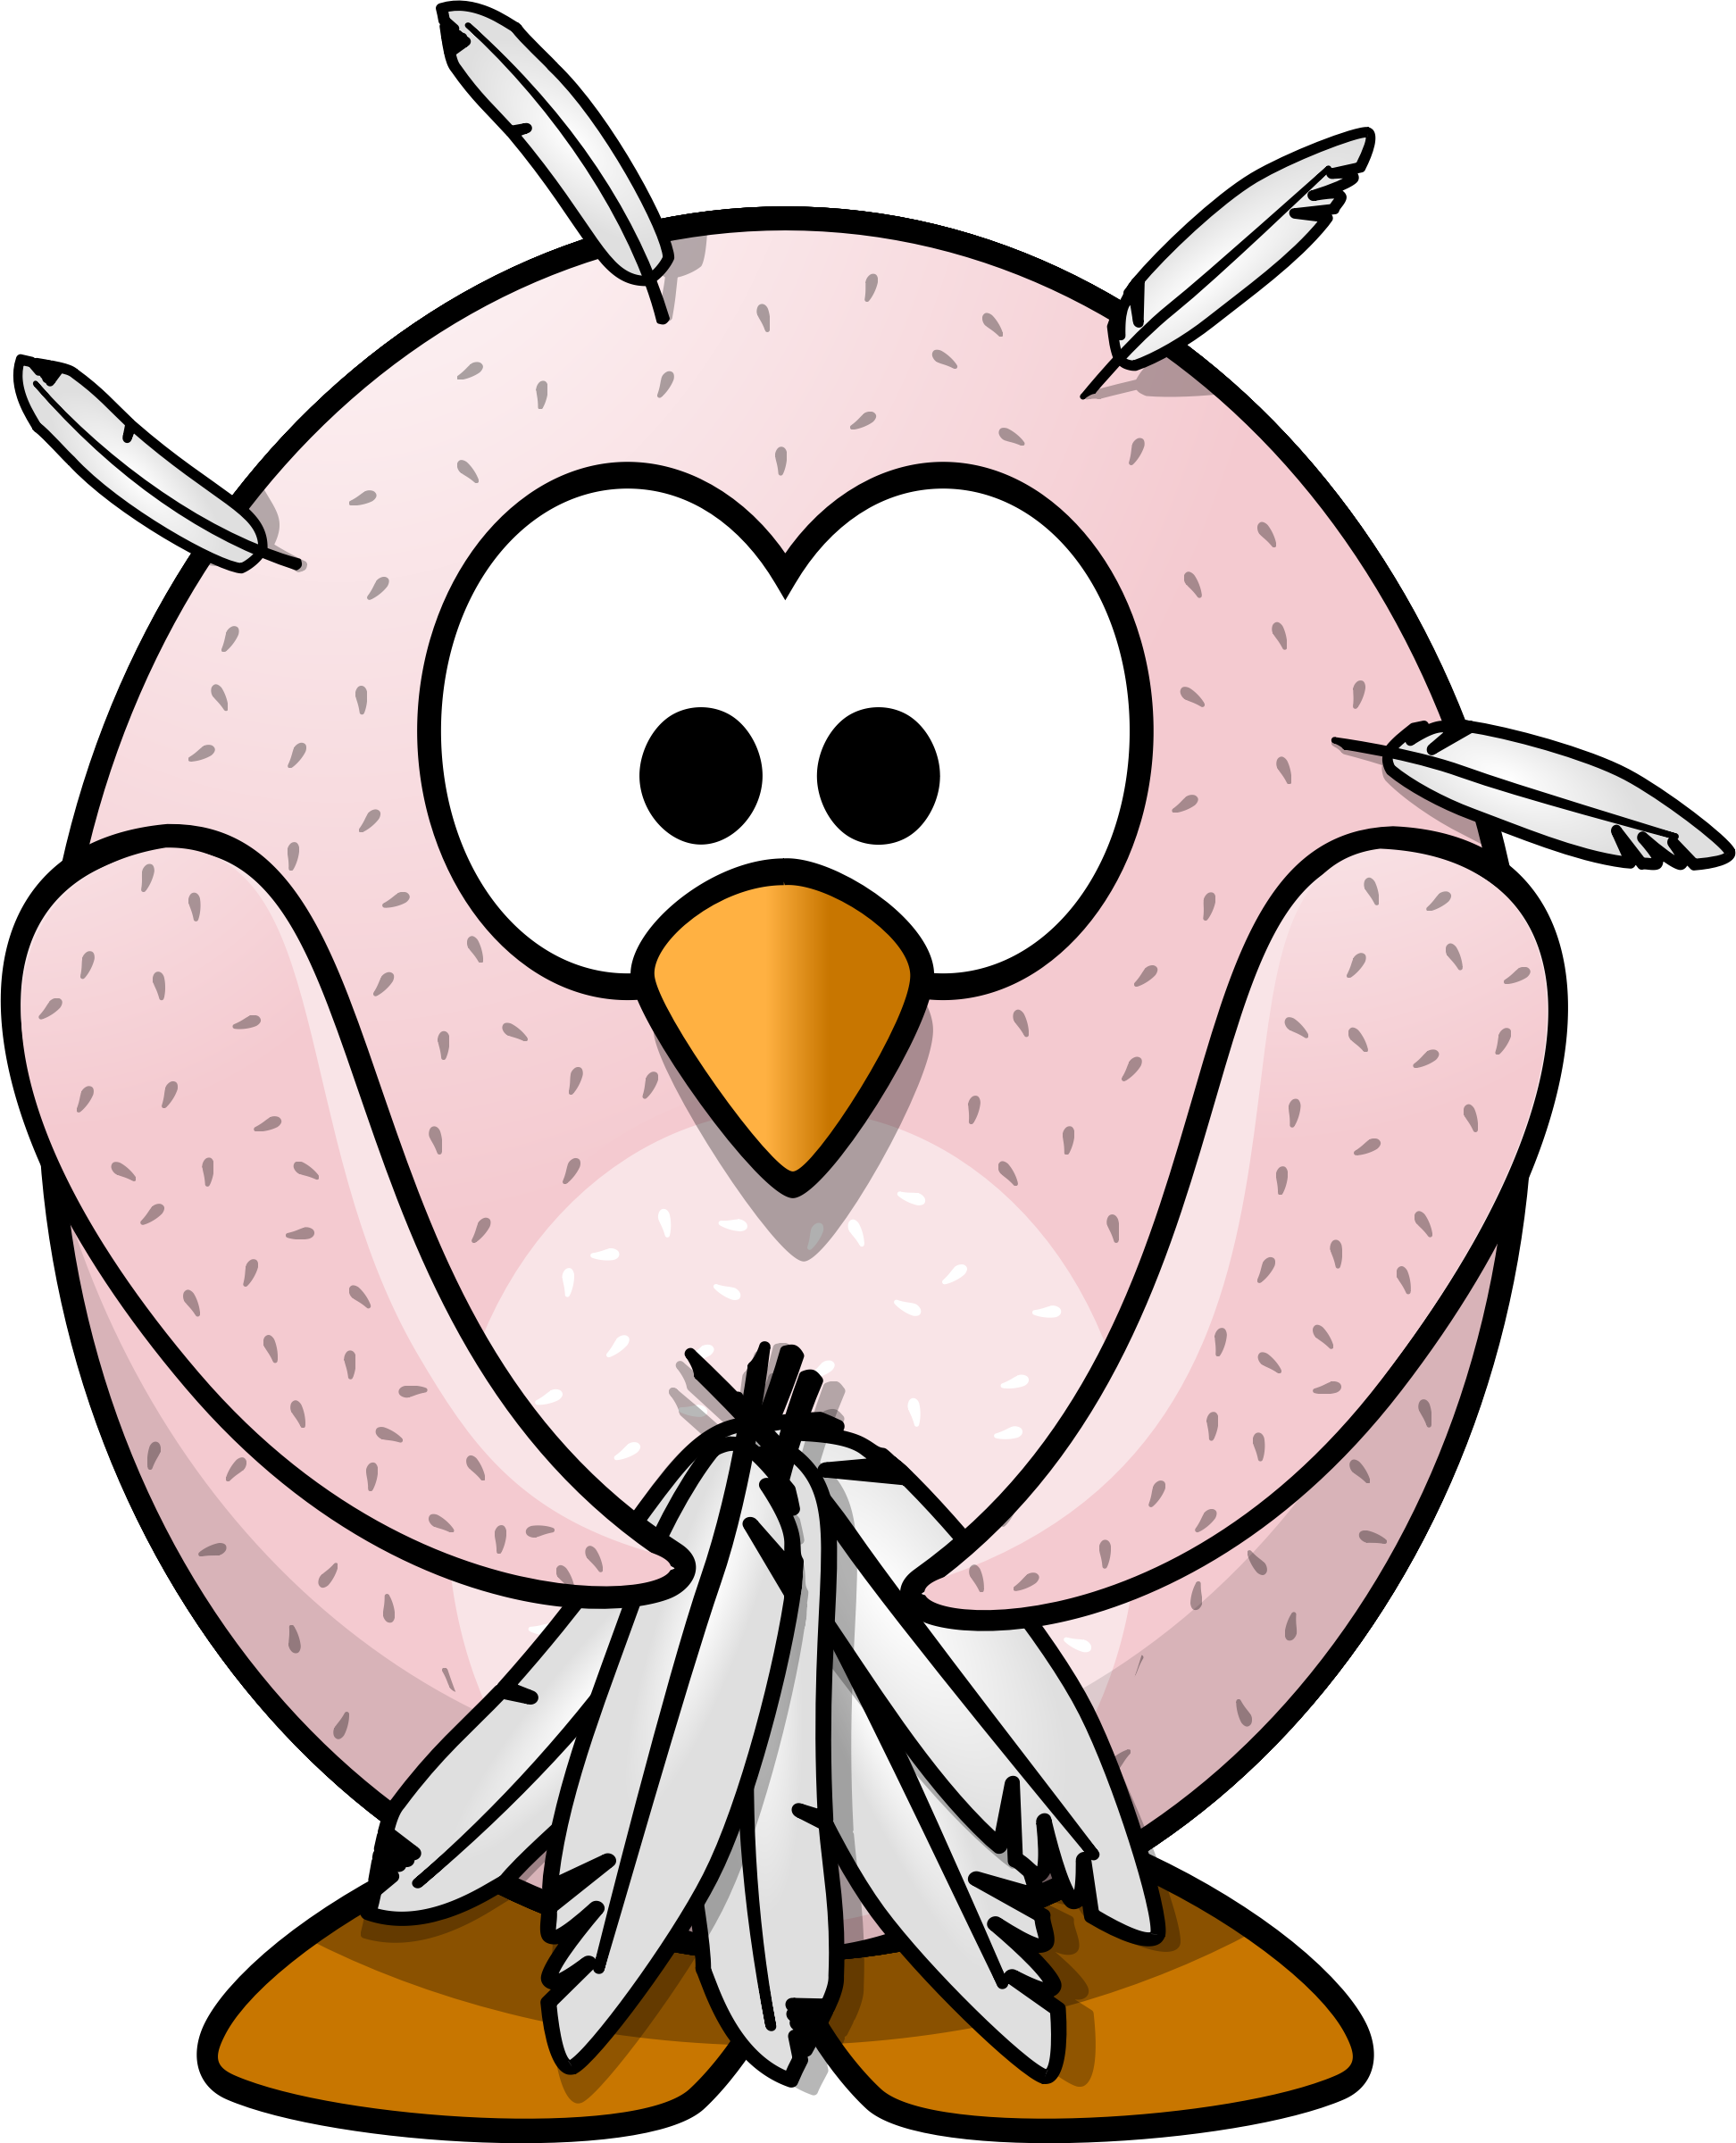 Feathers clipart goose feather. Plucked penguin big image